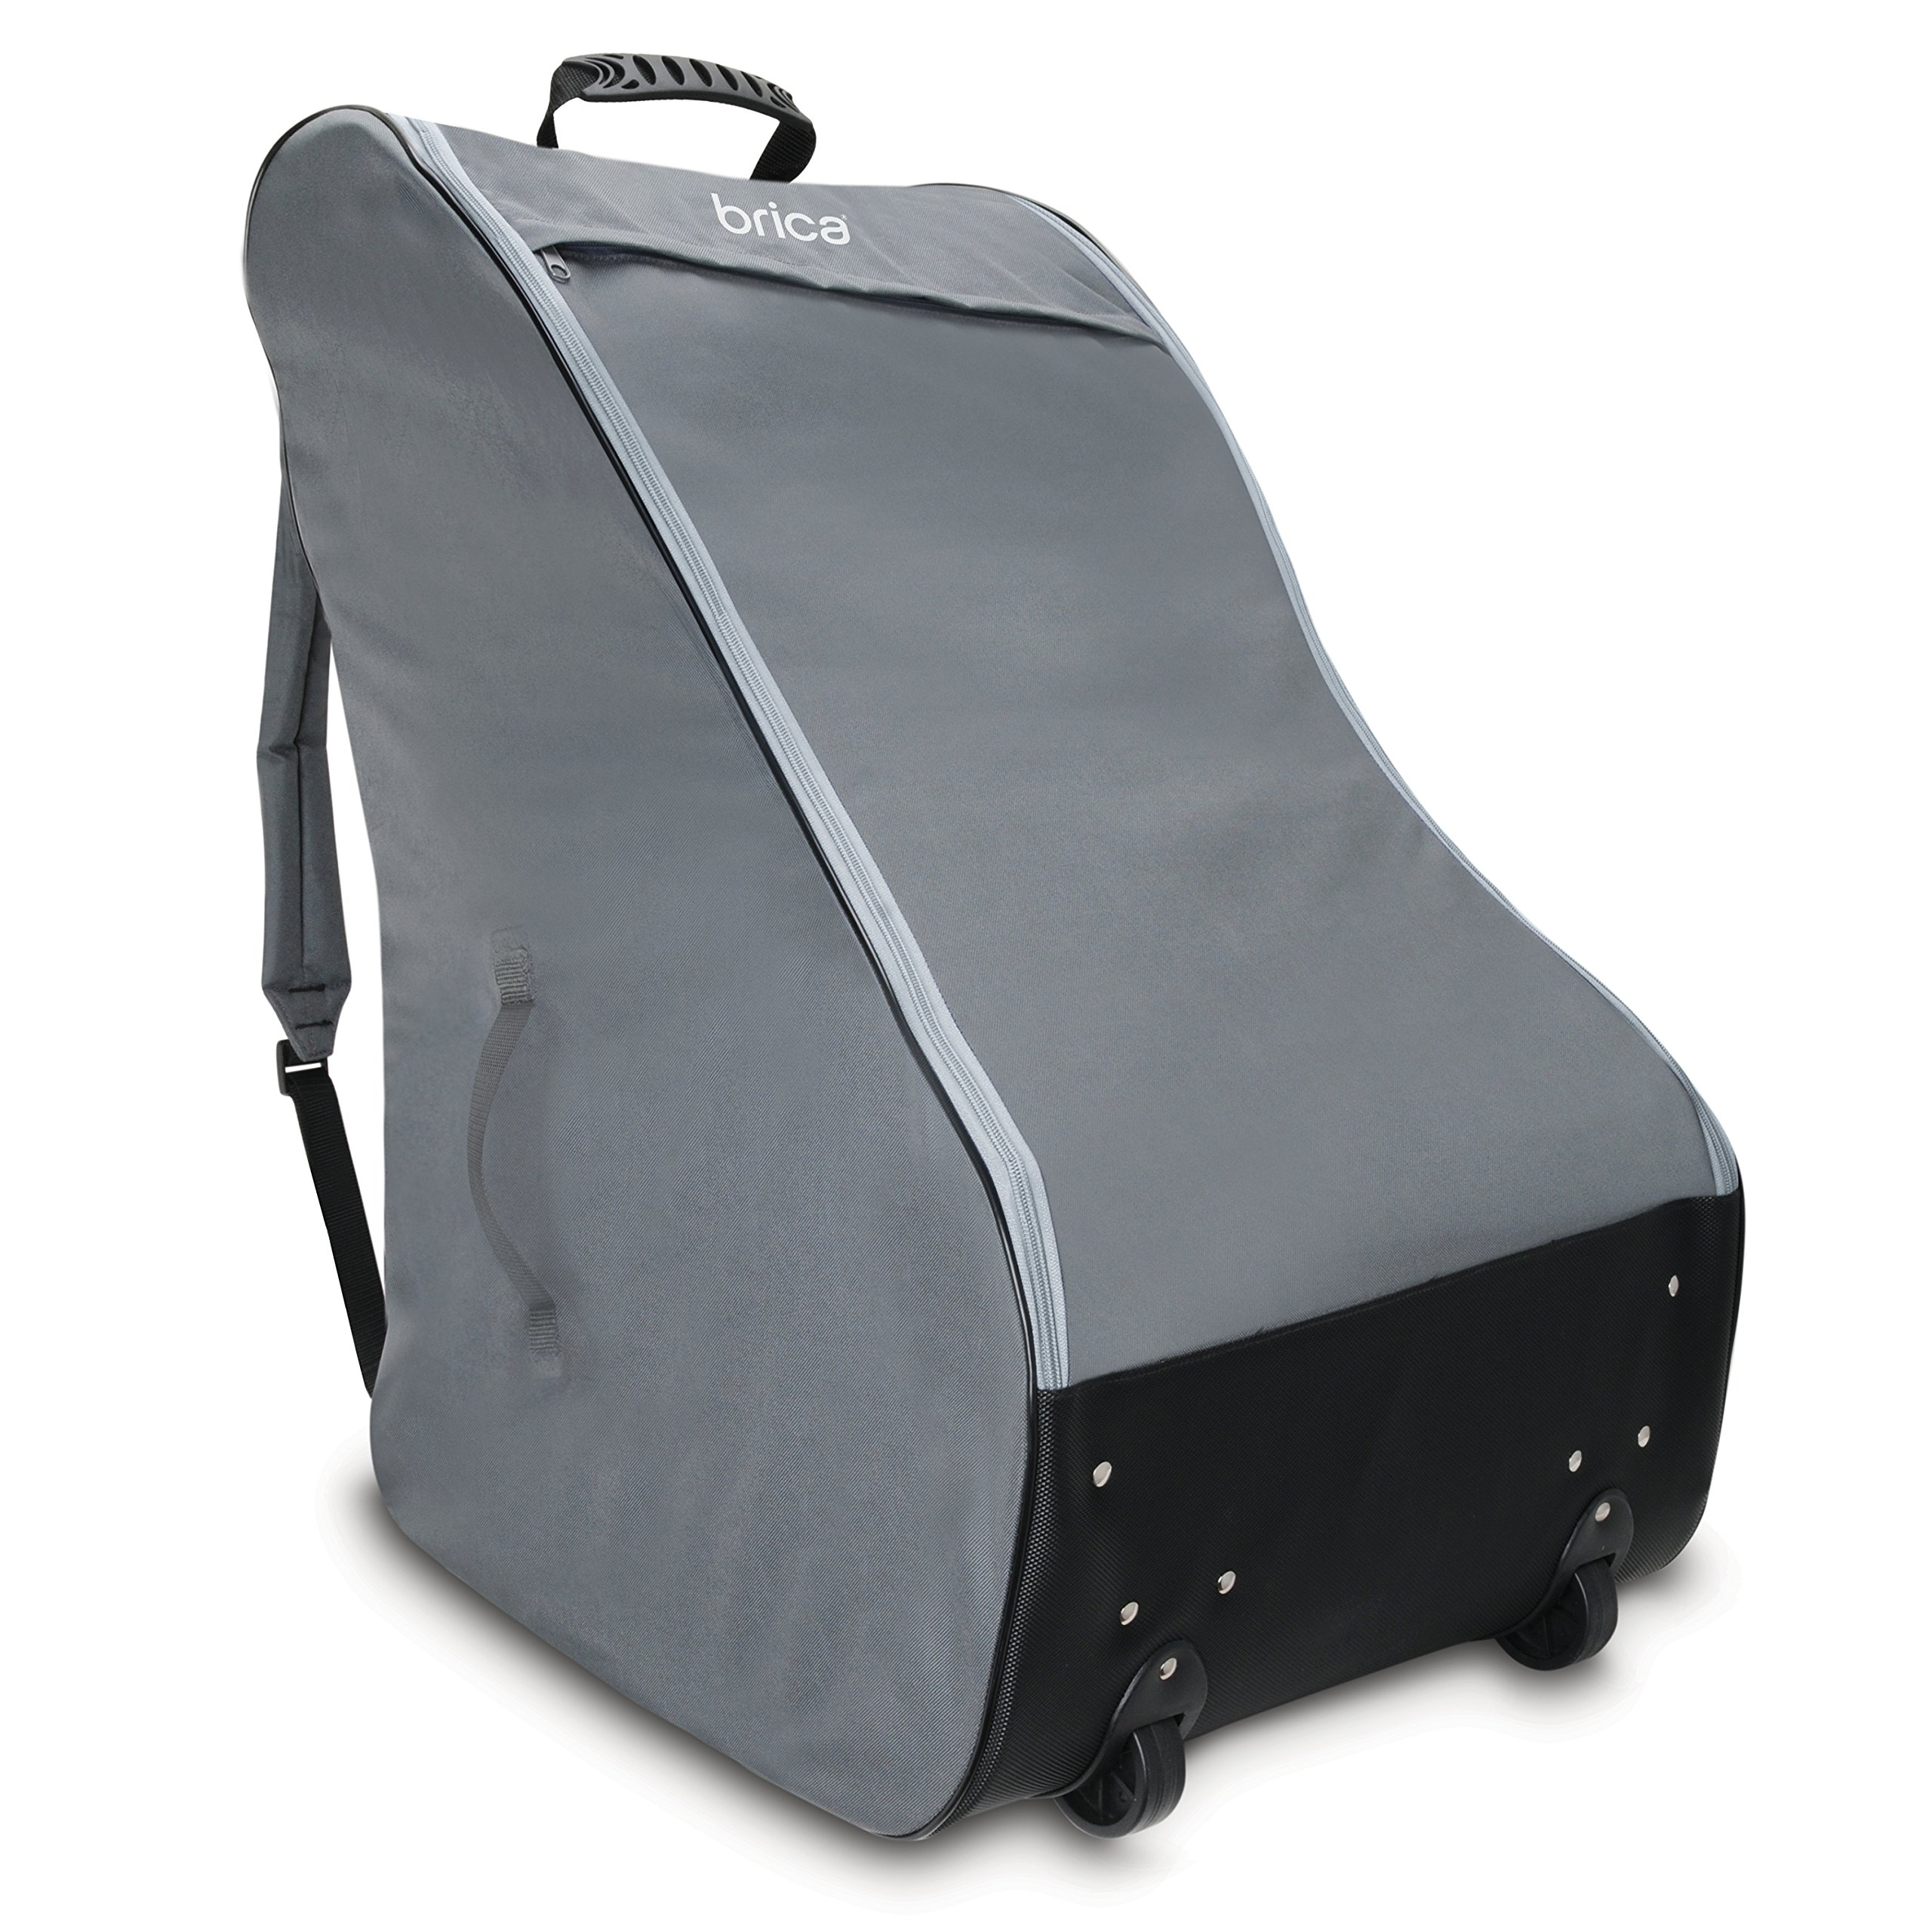 Brica Car Seat Bag